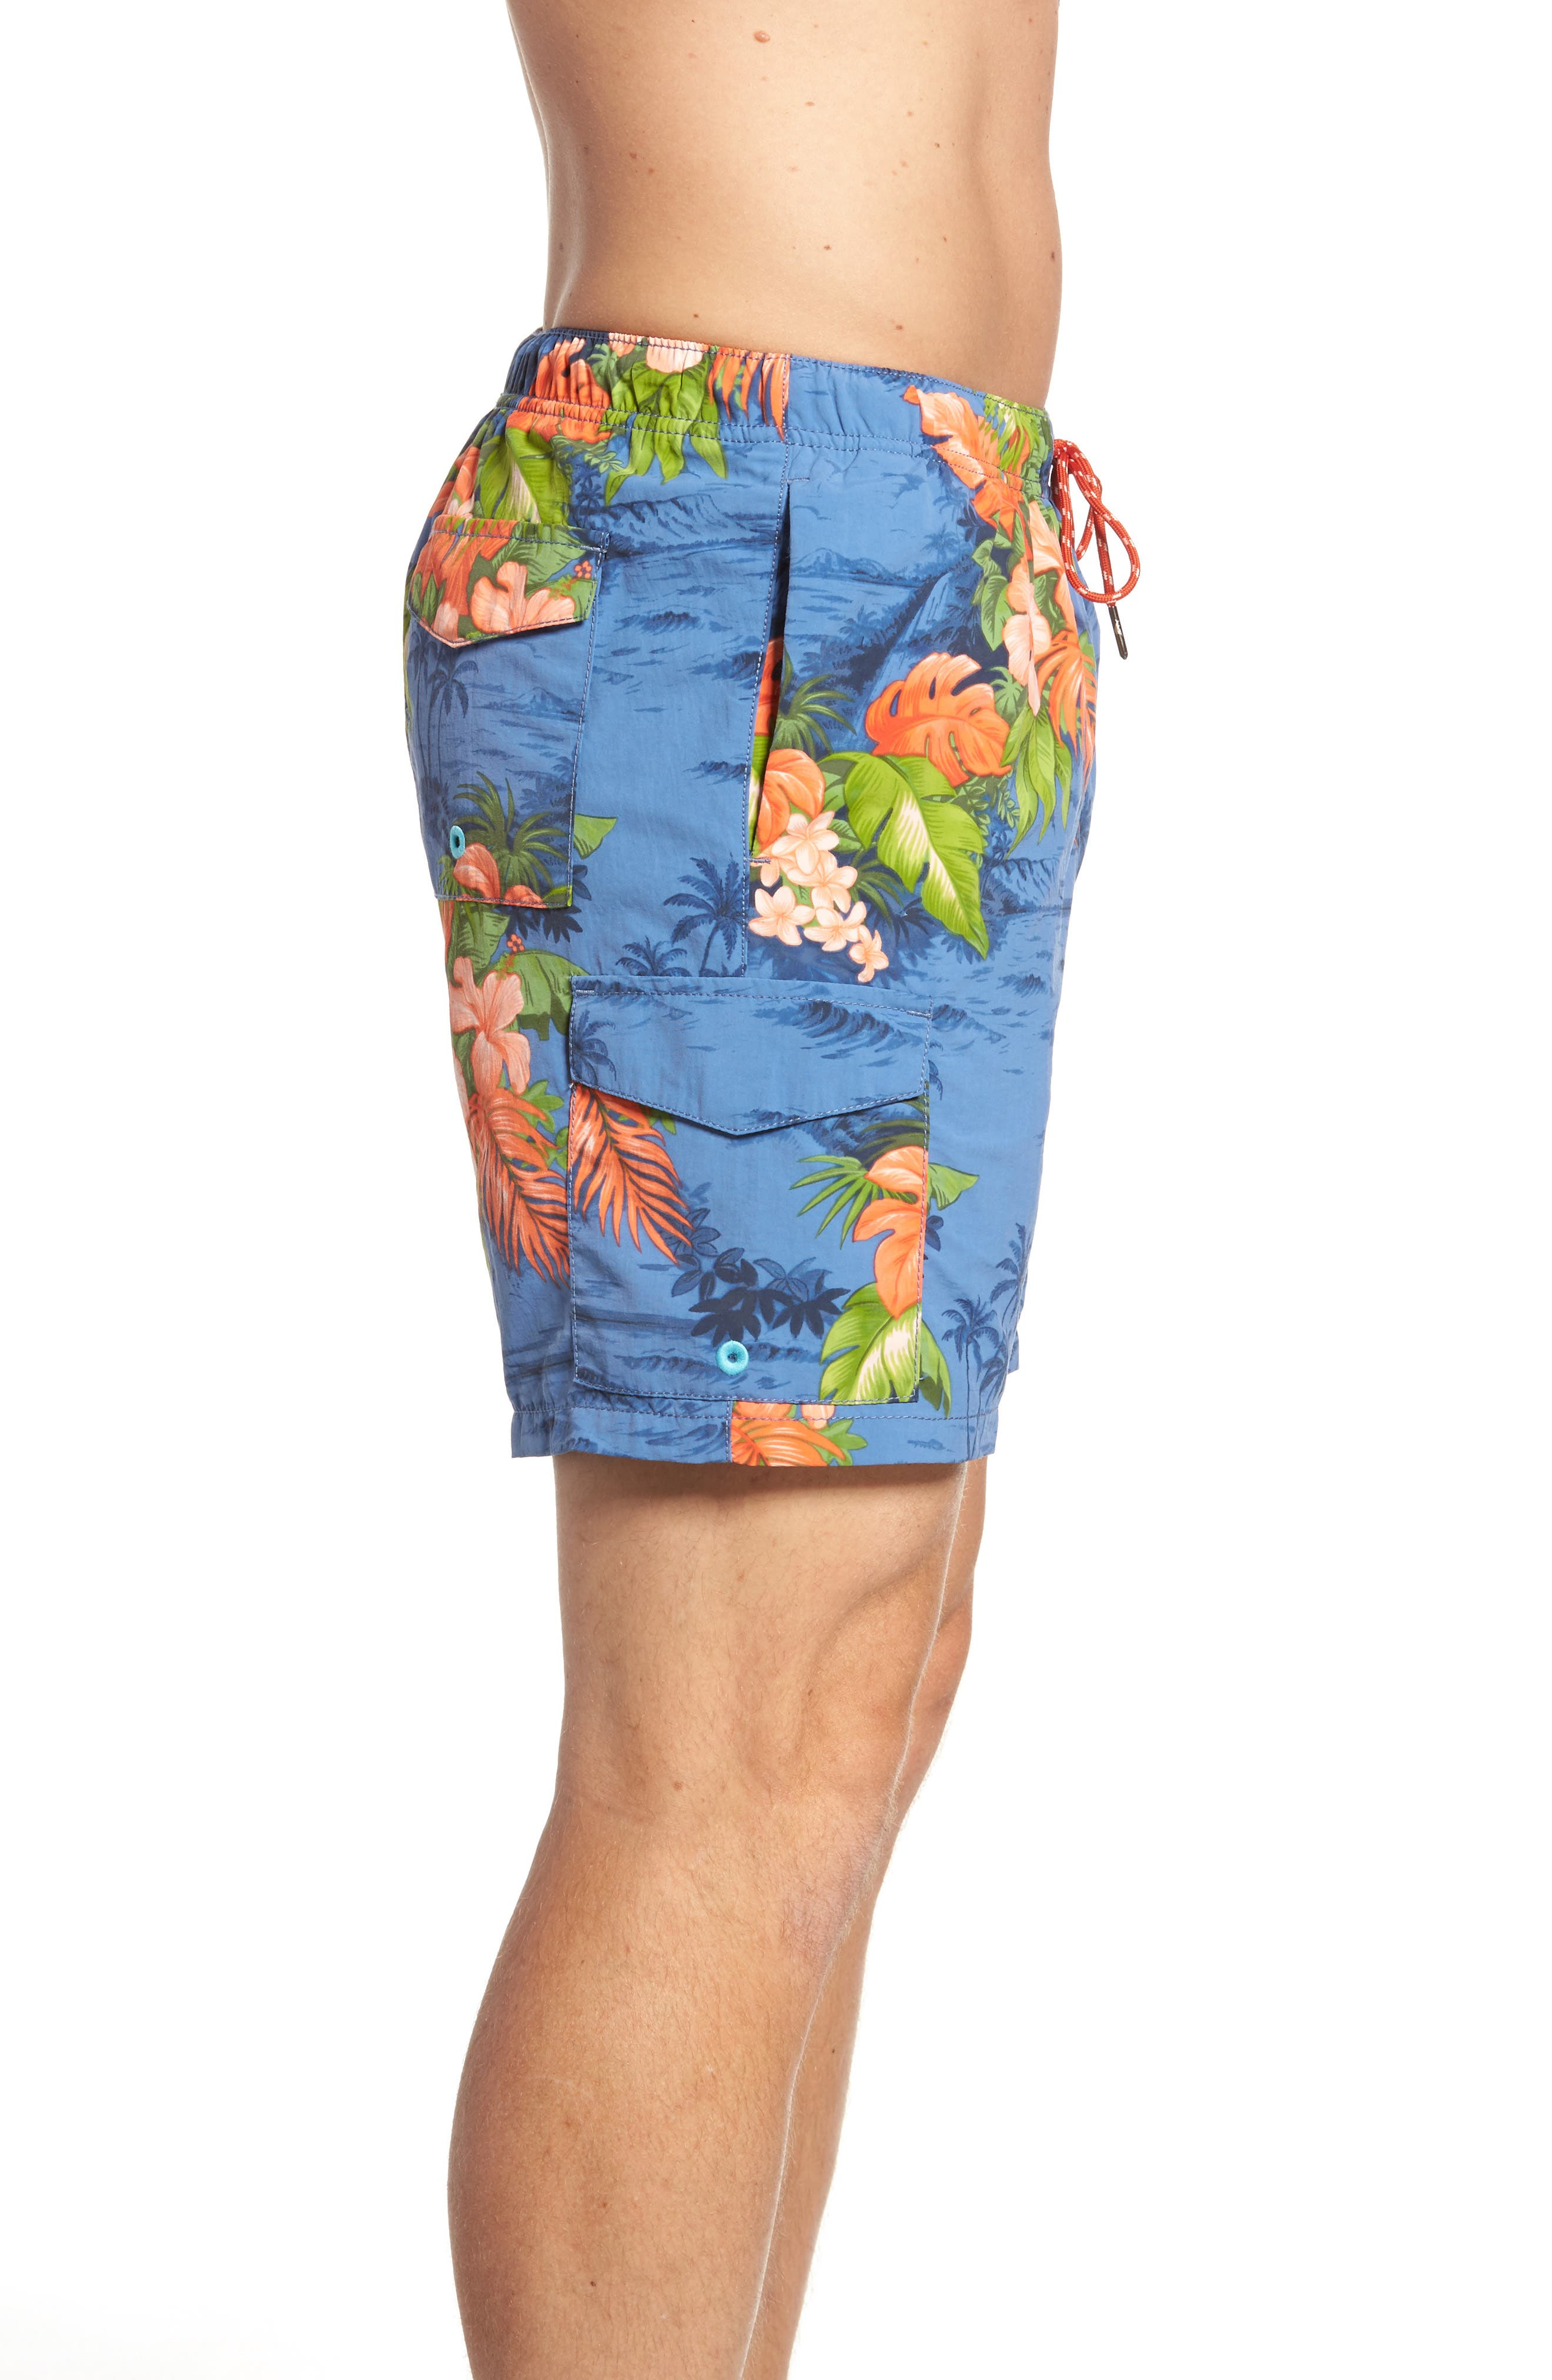 Naples Fiji Ferns Swim Trunks,                             Alternate thumbnail 3, color,                             Dockside Blue